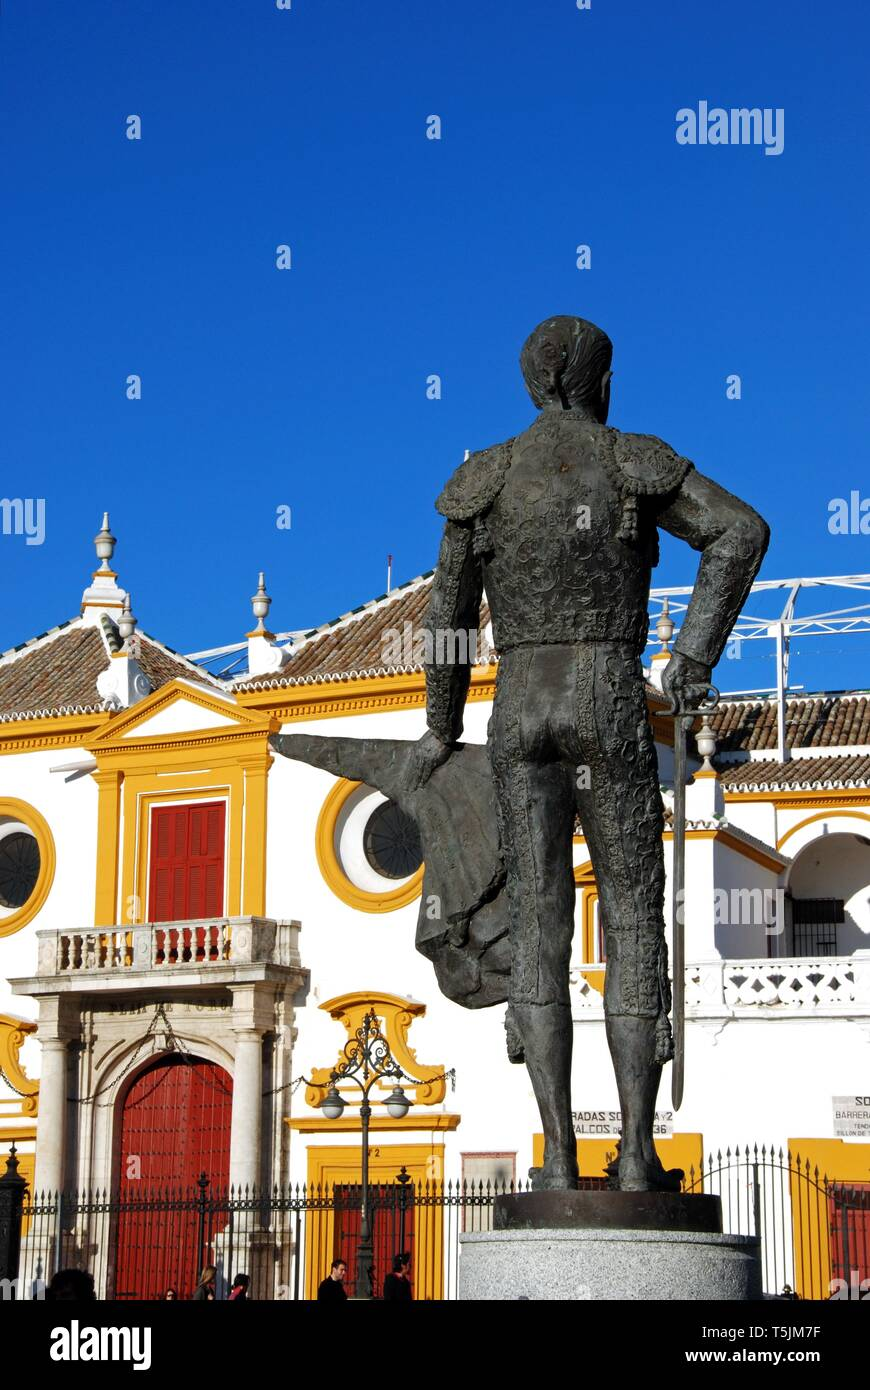 View of the bullring with a matador statue in the foreground, Seville, Seville Province, Andalusia, Spain, Europe - Stock Image